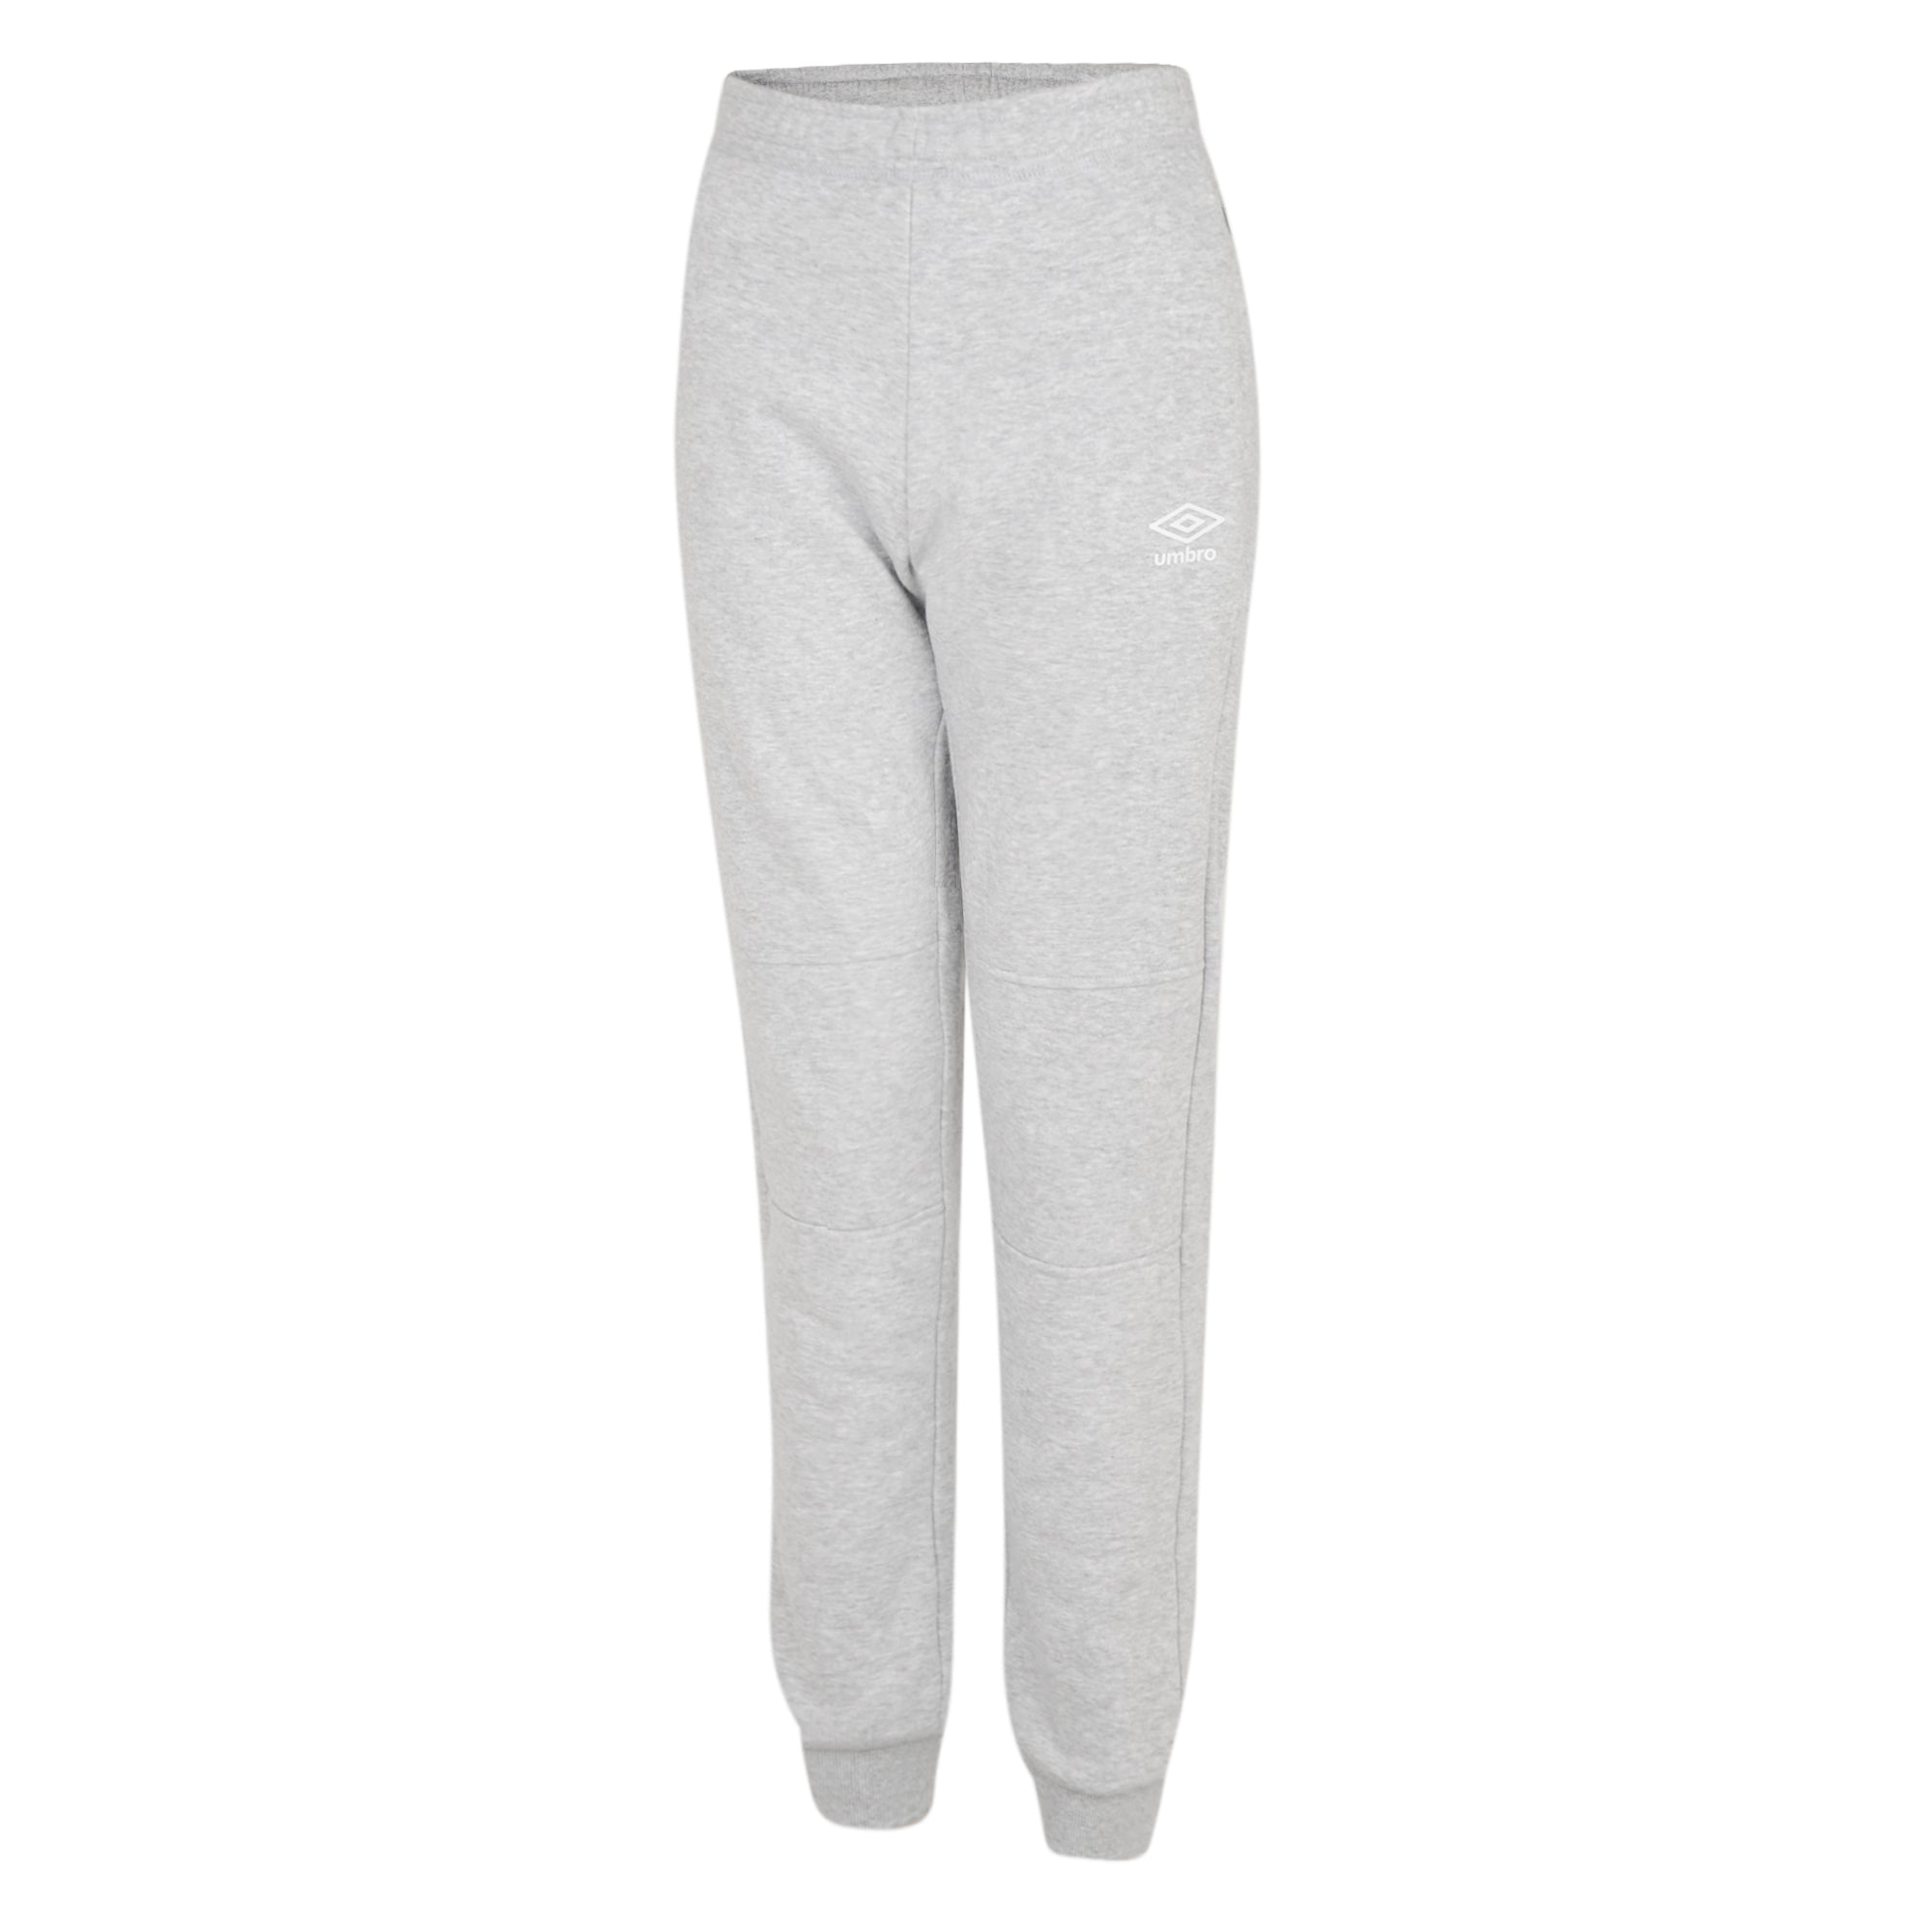 Umbro Club Leisure Women's Jogpants - Grey Marl/White